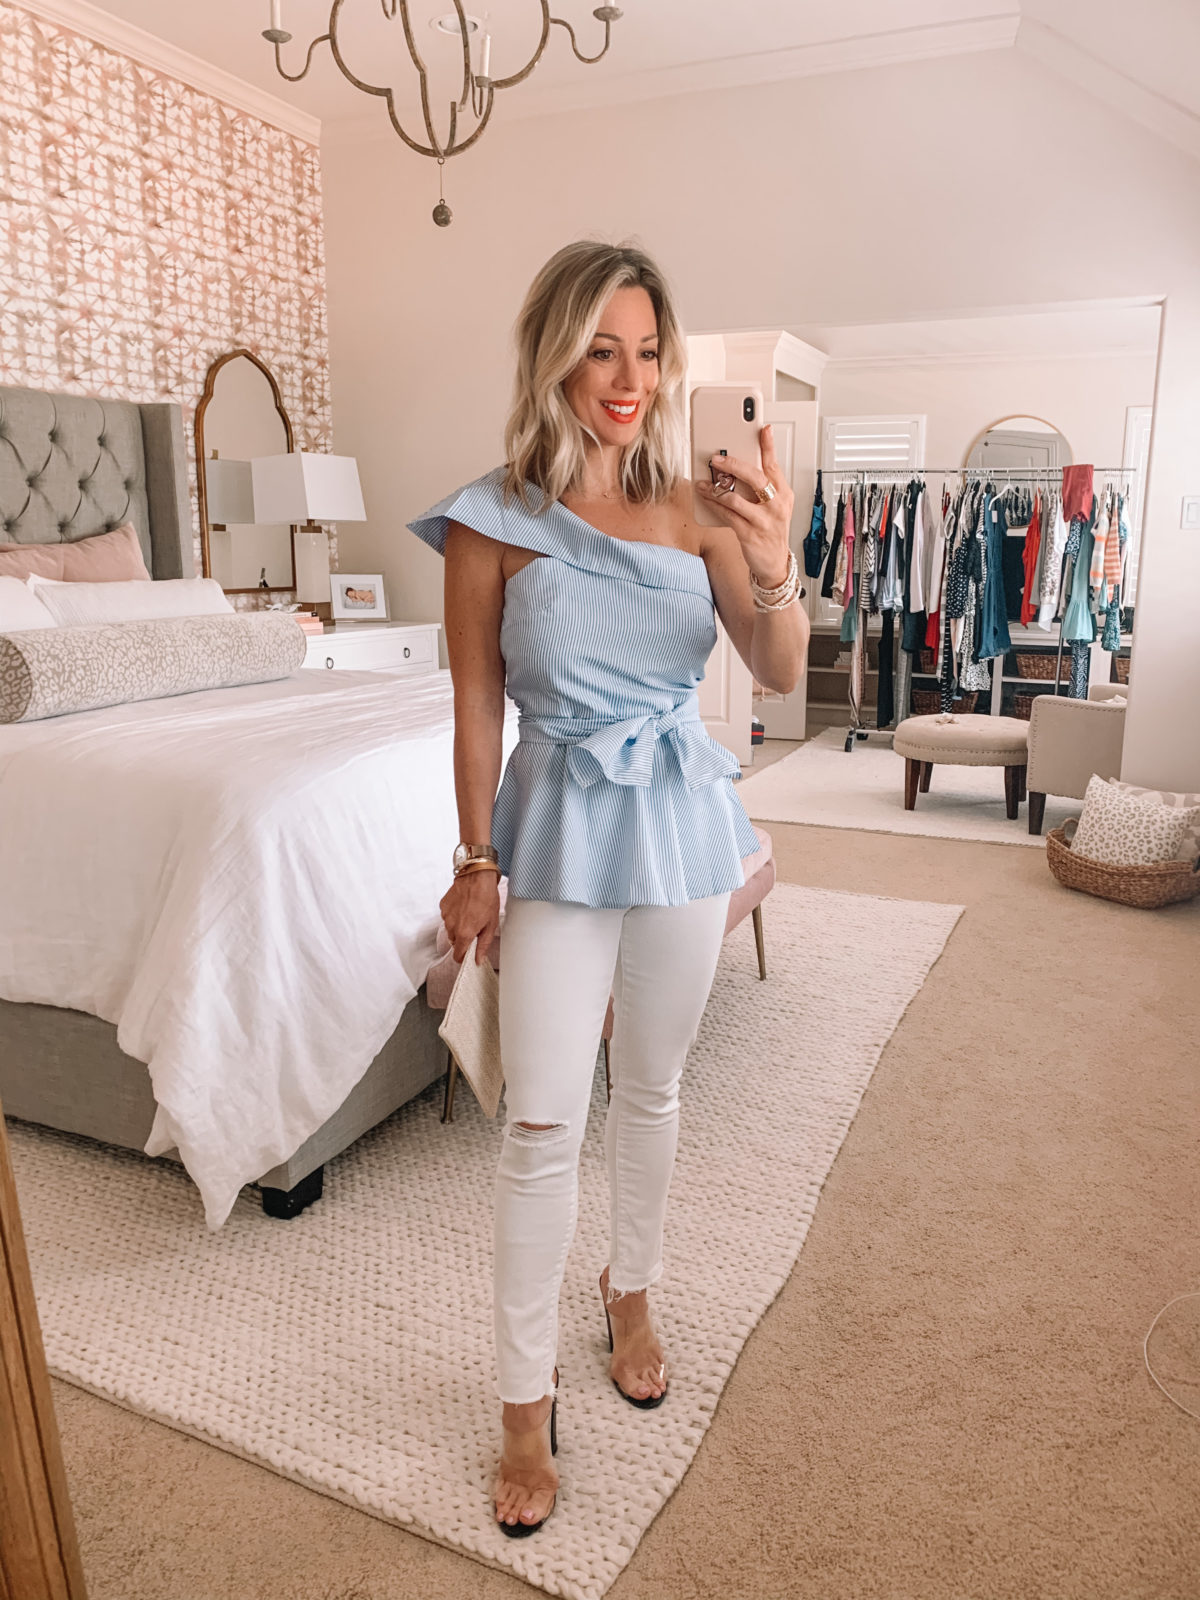 Amazon Fashion Finds, Striped Peplum One Shoulder Top, Distressed White Skinny Jeans, Clear Heels, Woven Clutch